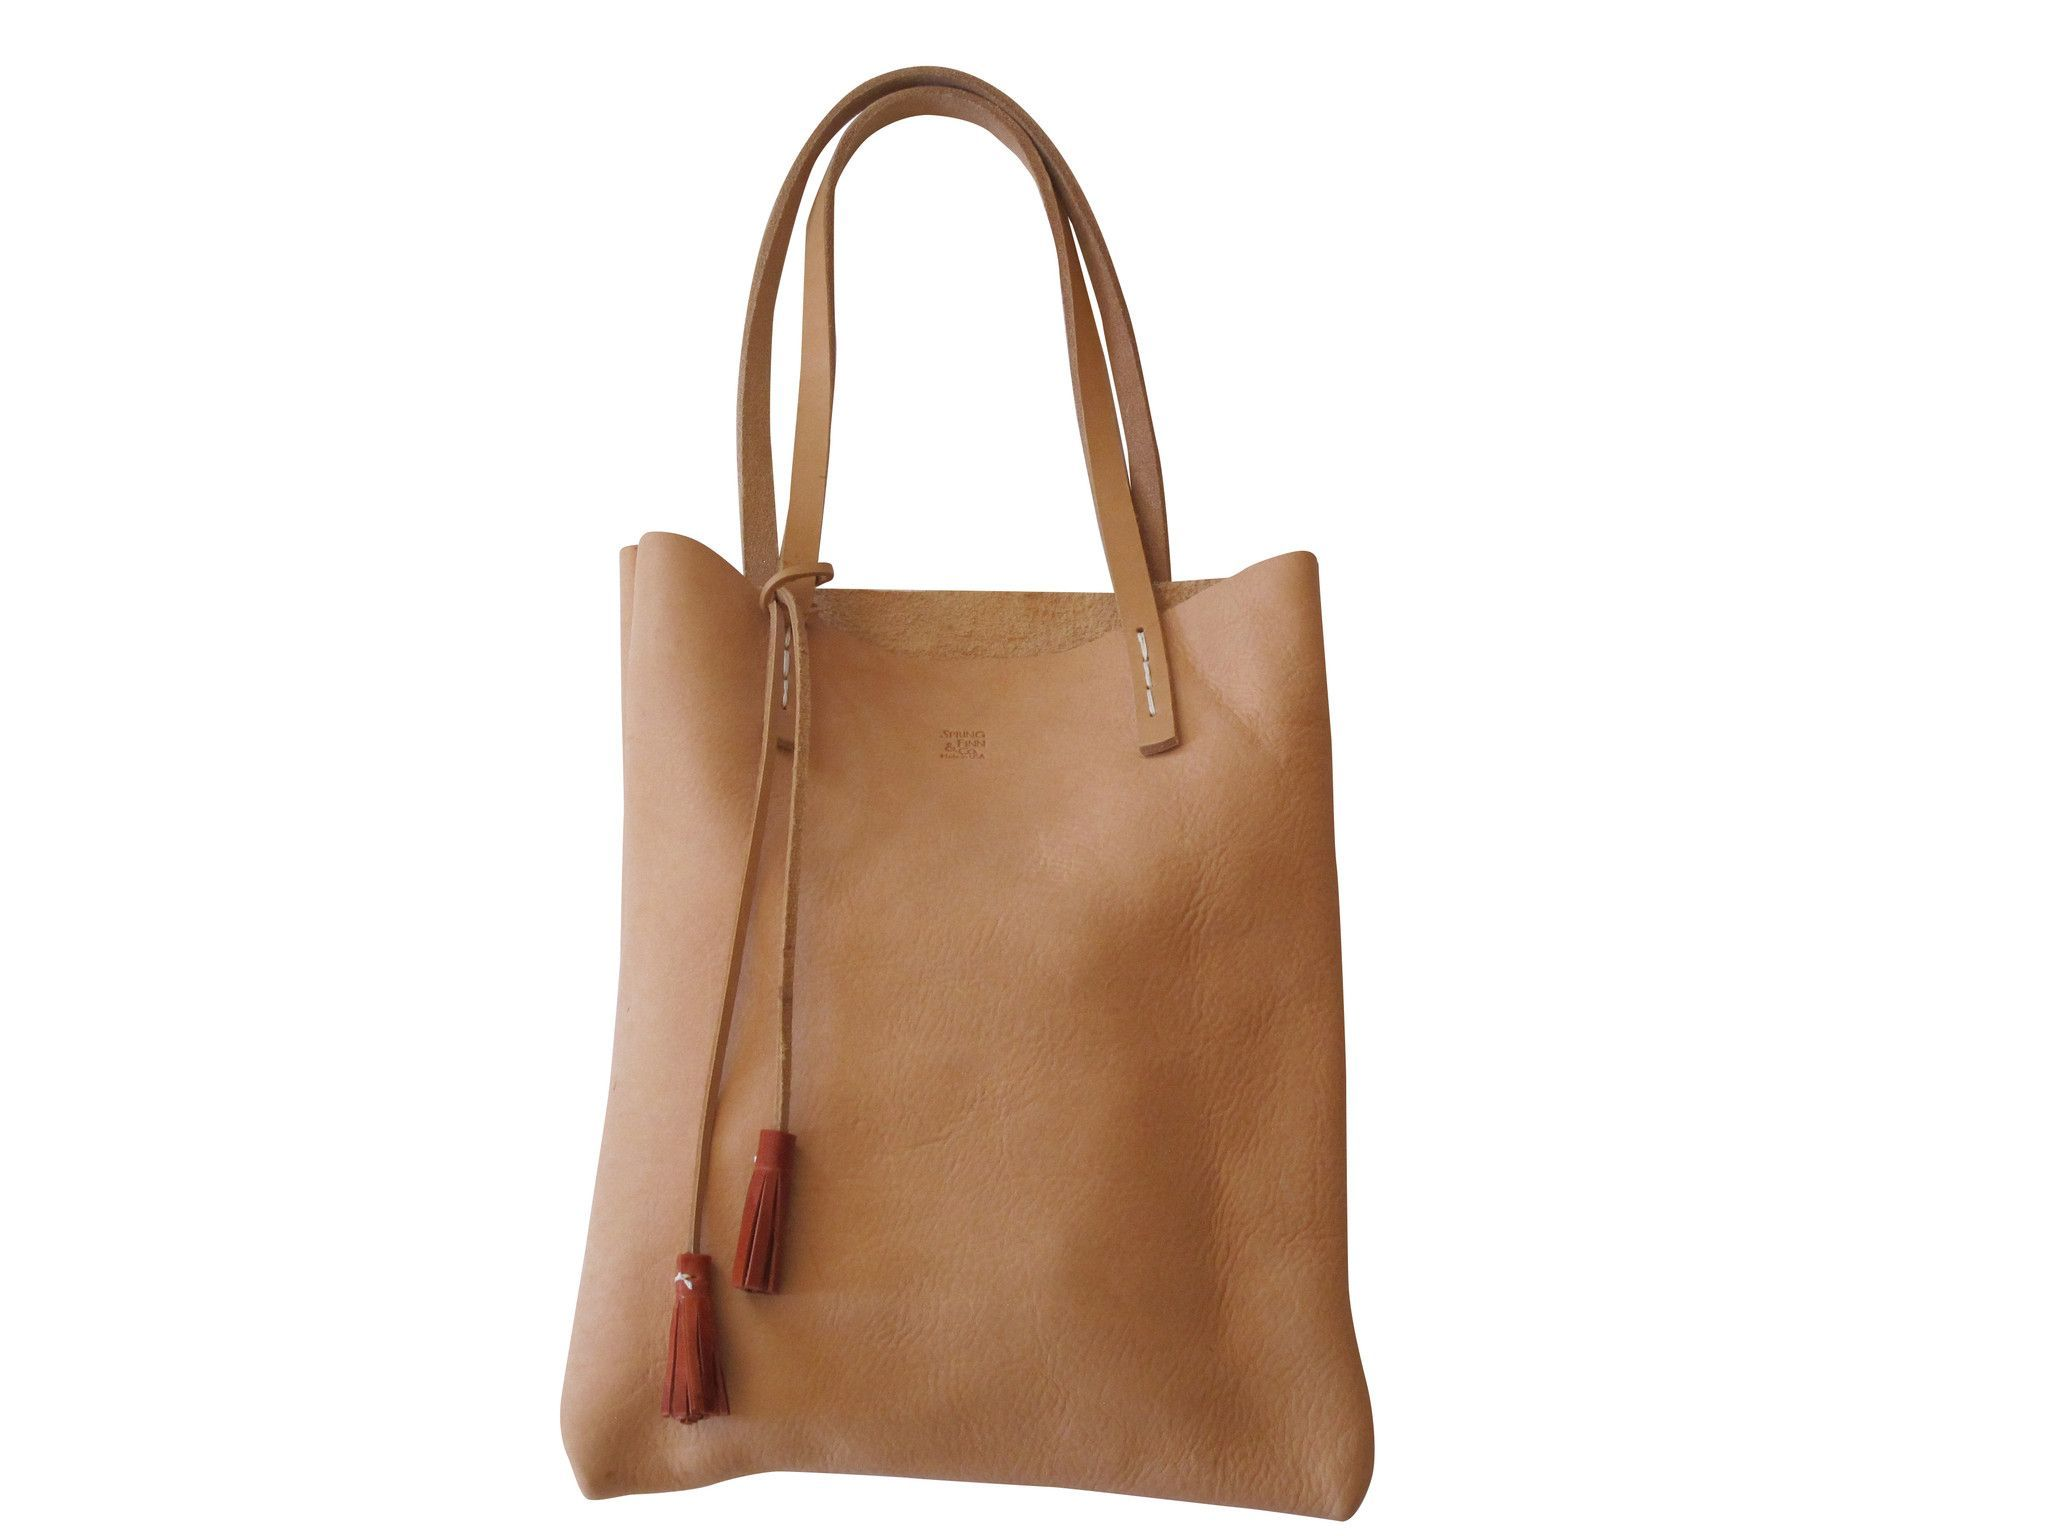 Milled vegetable tanned leather tote bag, SABLE